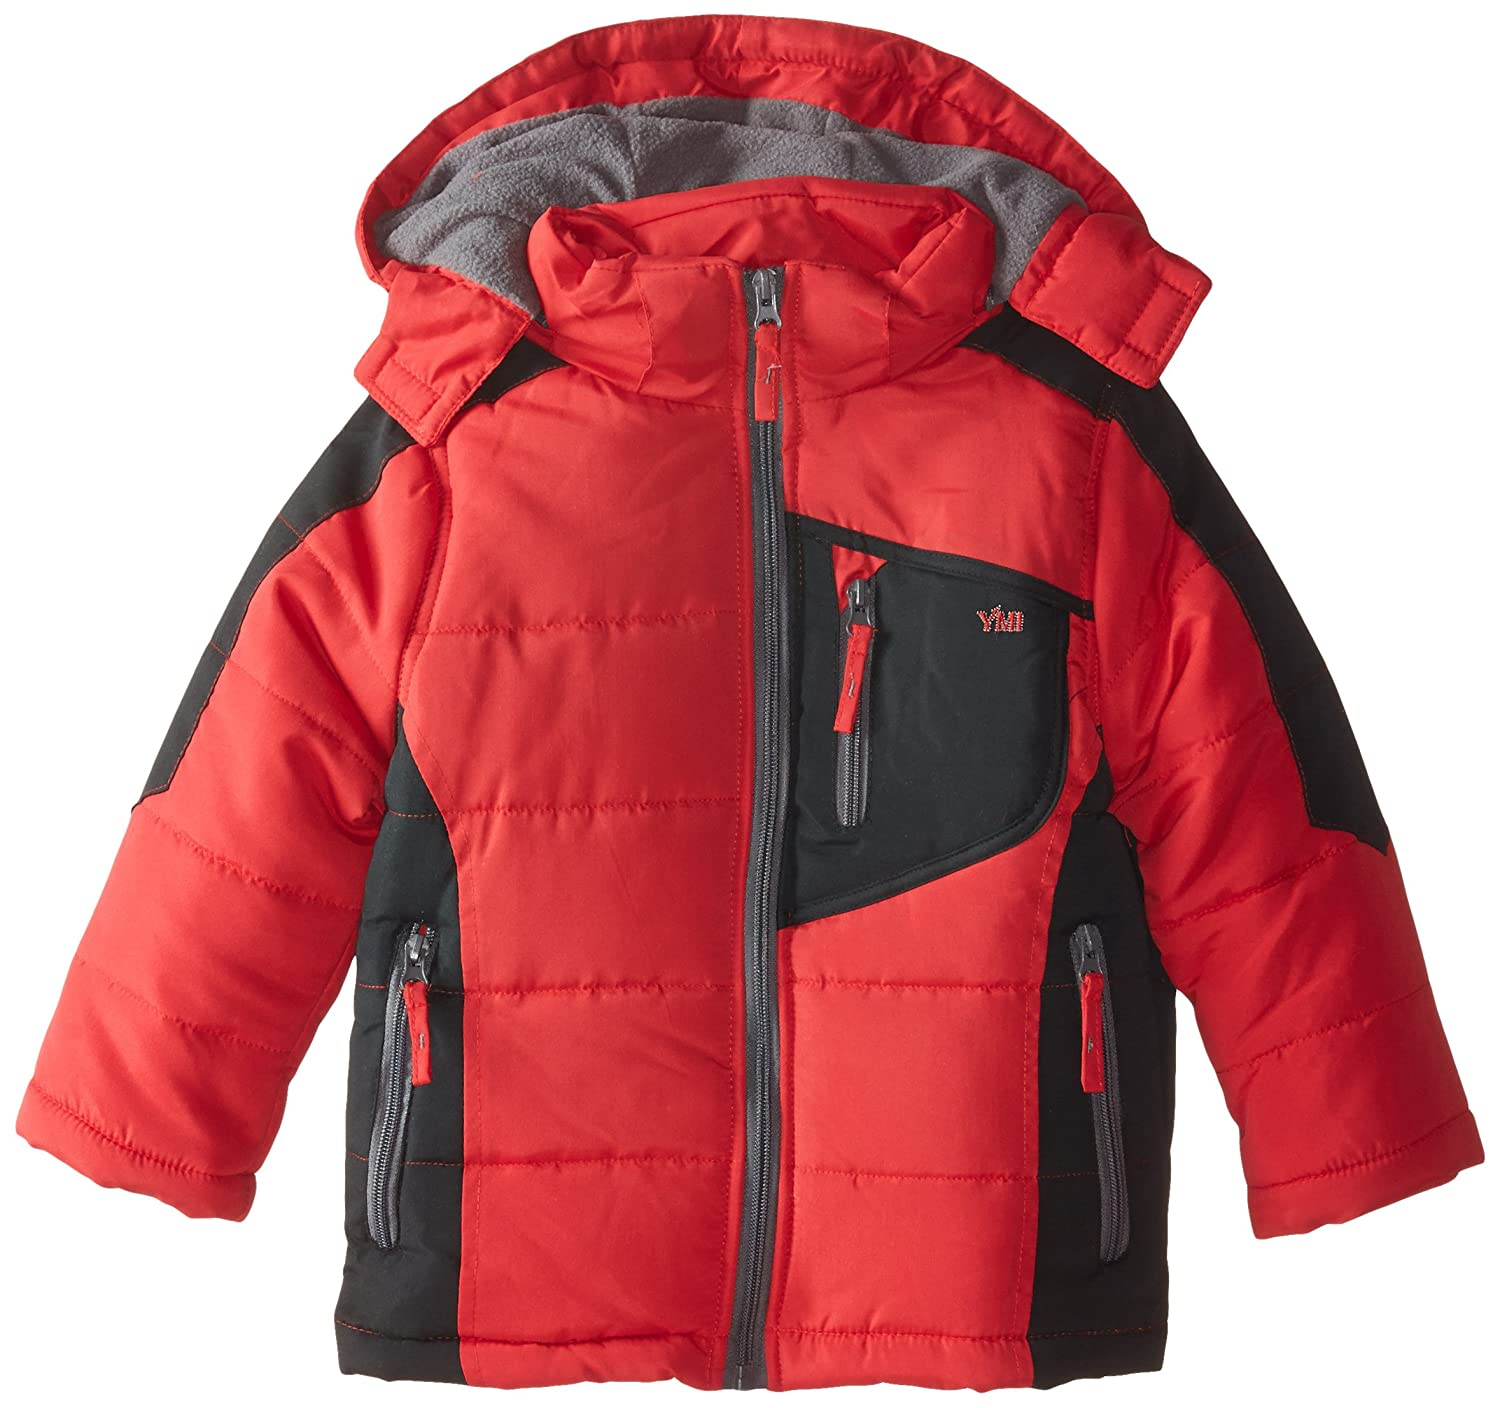 YMI Boys' Color Block Bubble Jacket with Detachable Hood YMI Boys 2-7 1358TBL